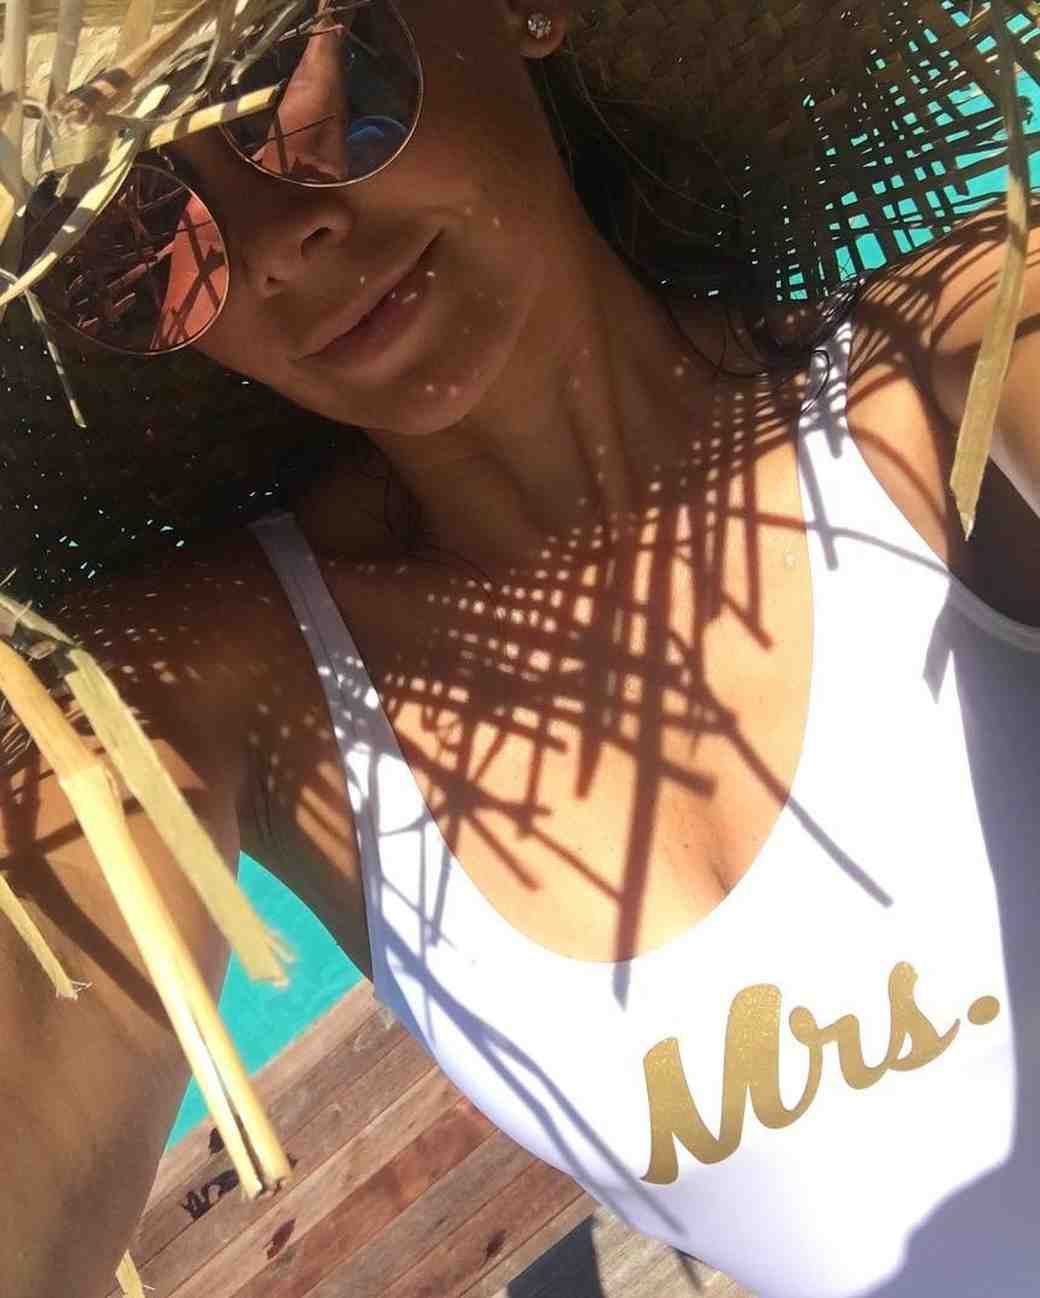 Kym Herjavec on Honeymoon in Bora Bora